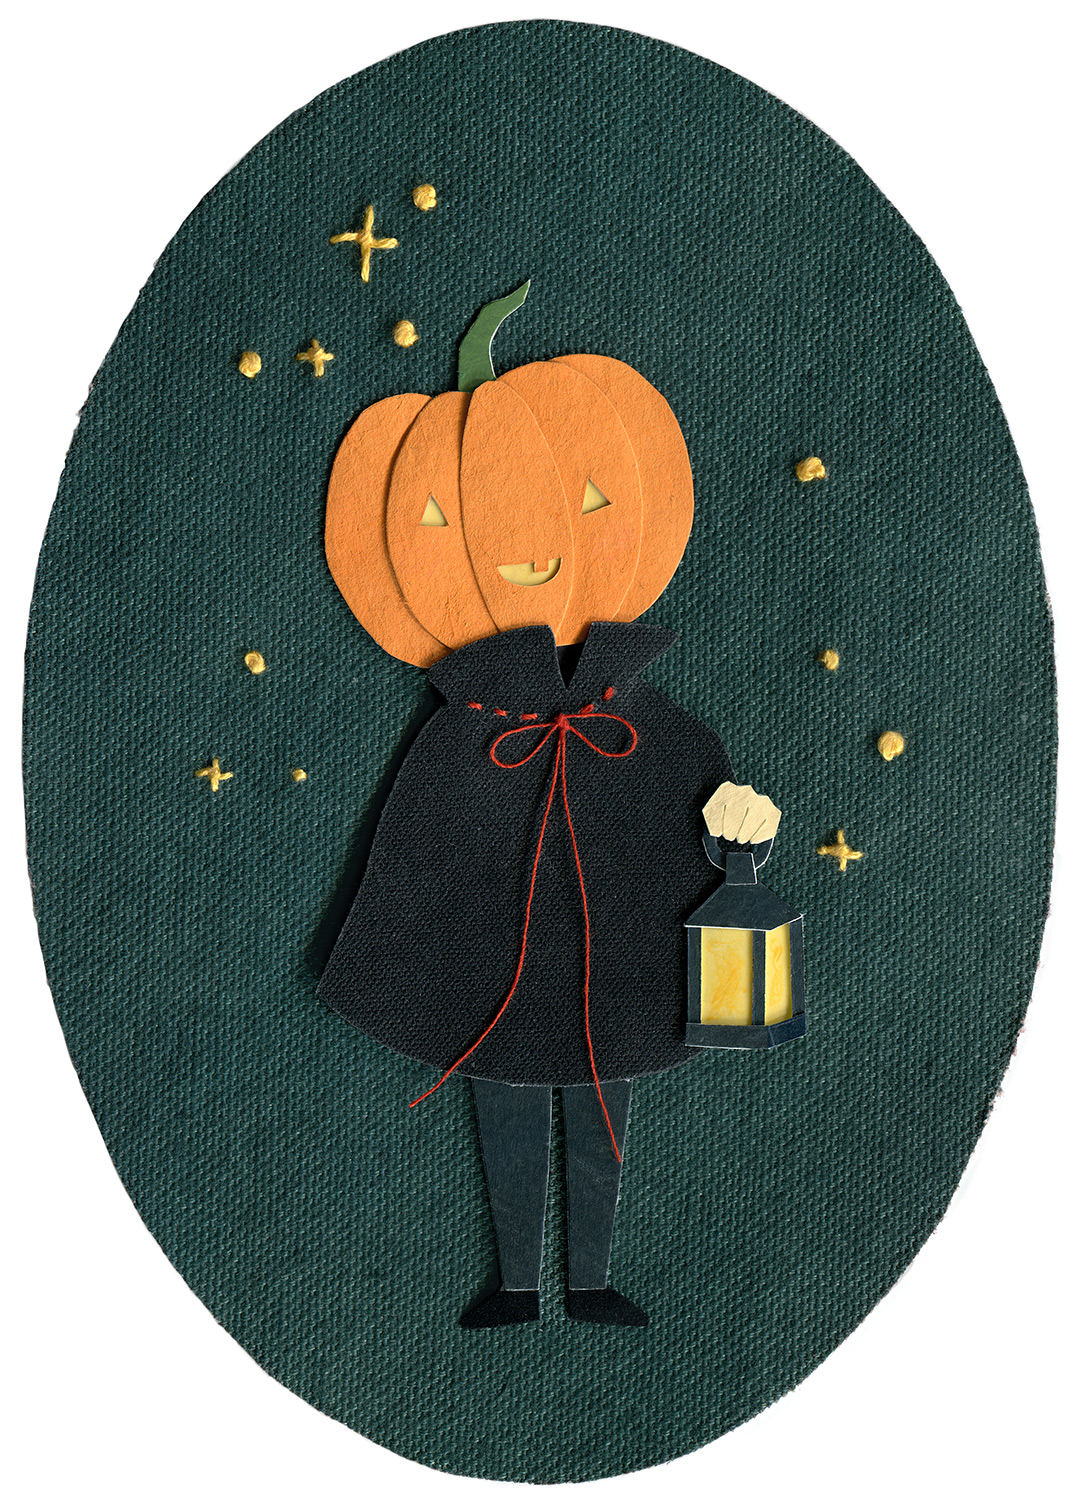 Pumpkin Head Illustration by Miki Sato